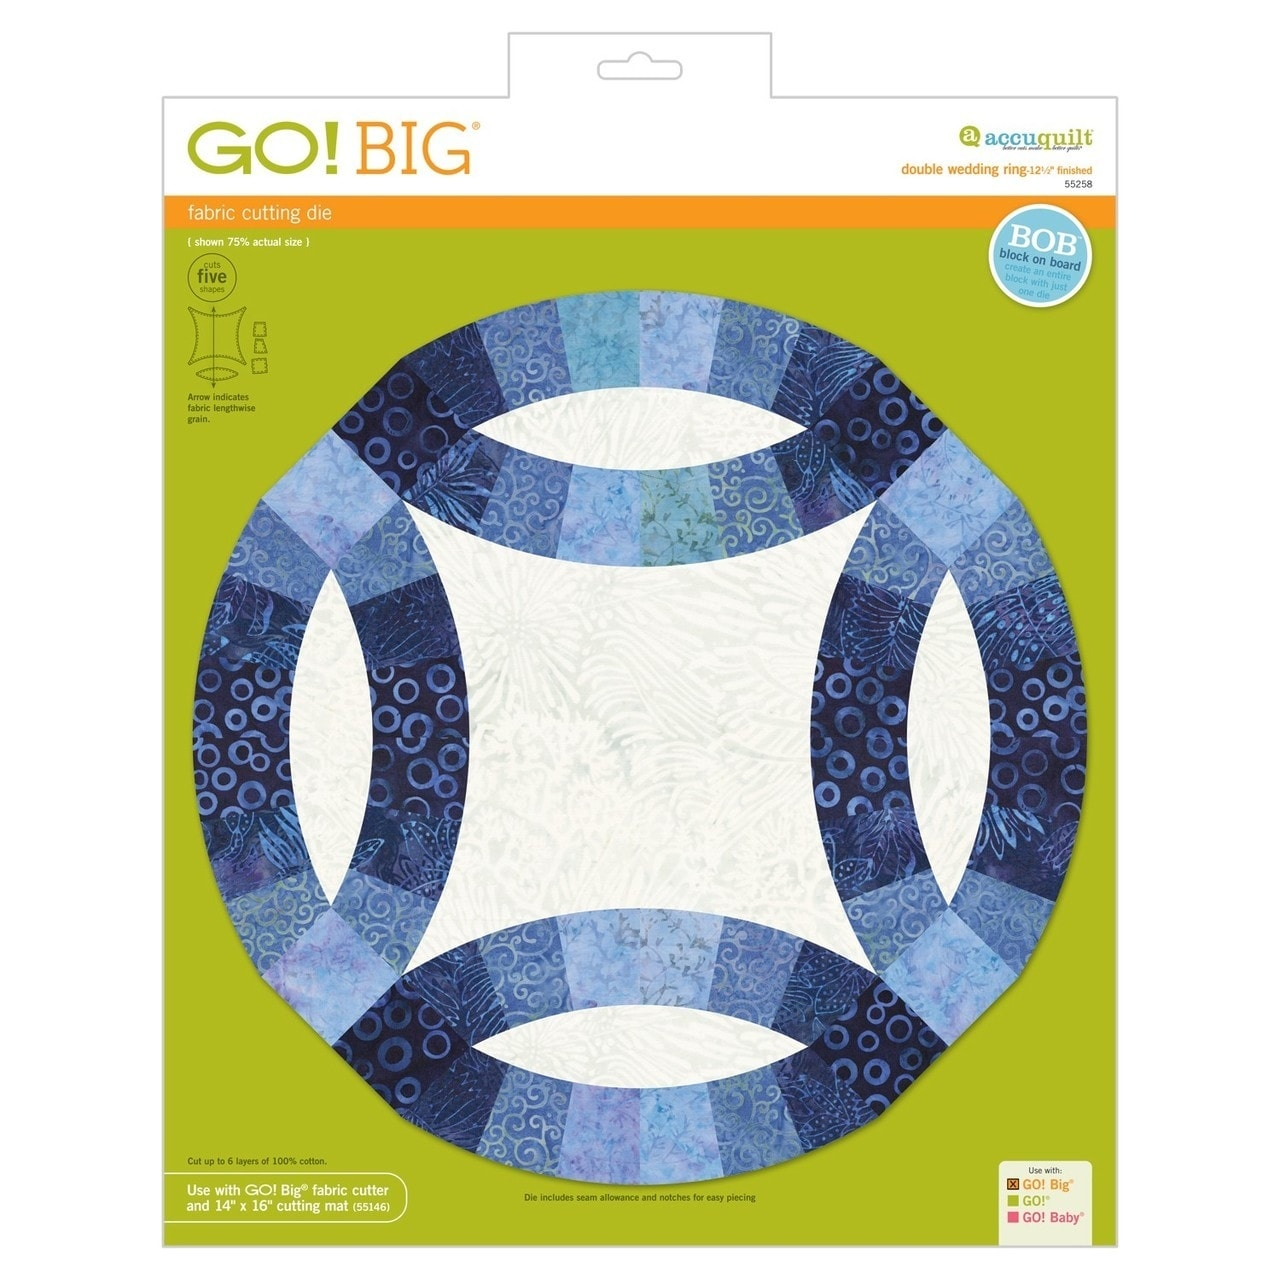 Accuquilt Go Big Double Wedding Ring 12 1 2 Finished Fabric Die